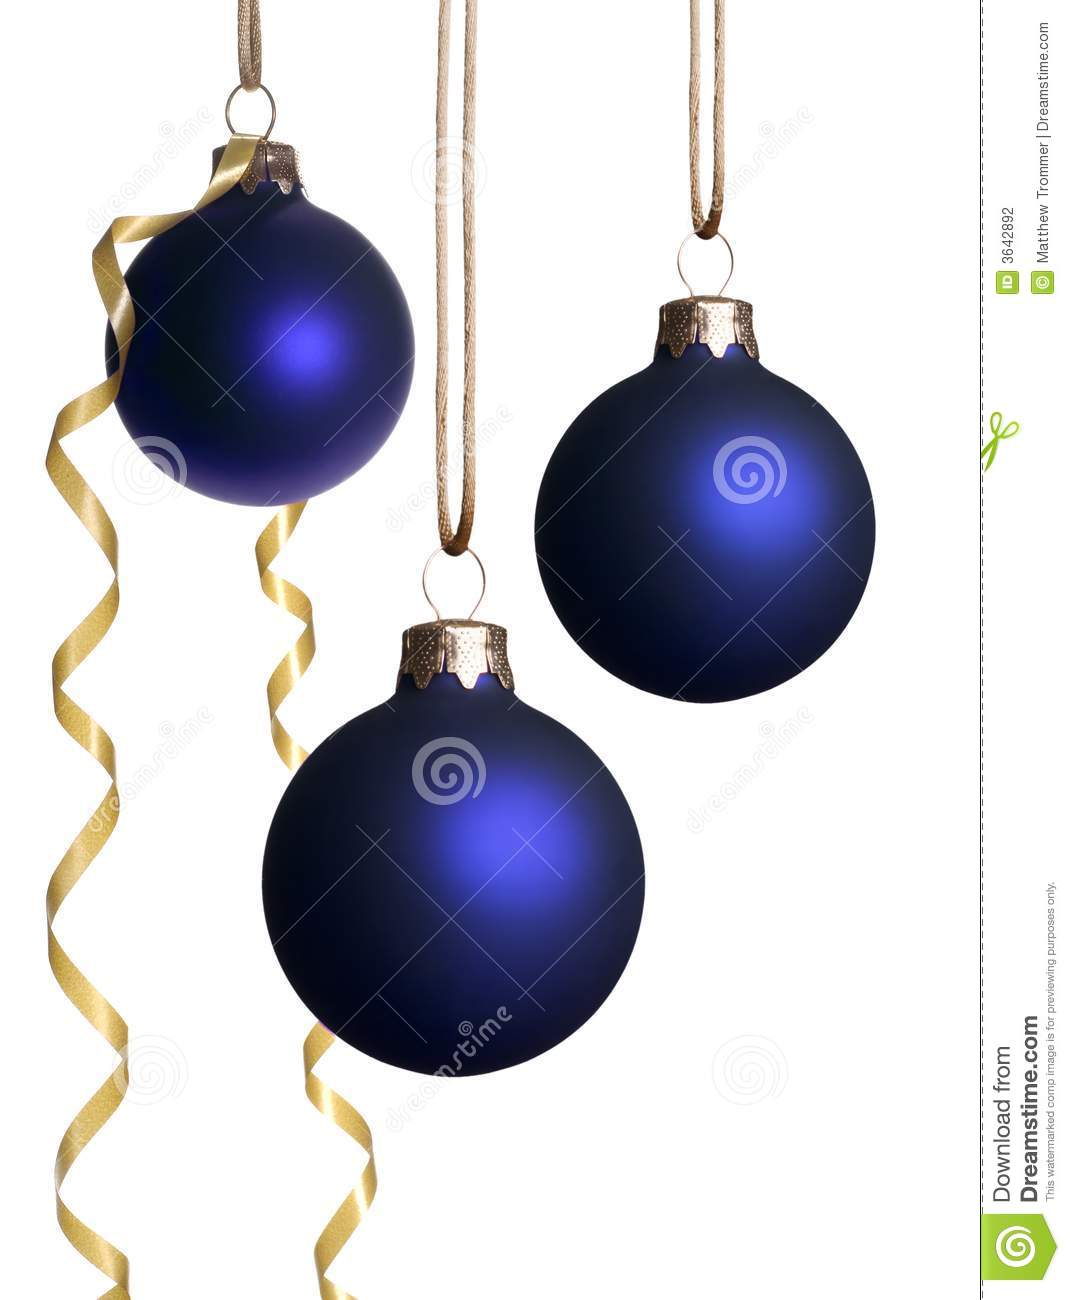 Hanging blue christmas ornaments with gold ribbon stock photography image 3642892 - Hanging christmas ornaments ...